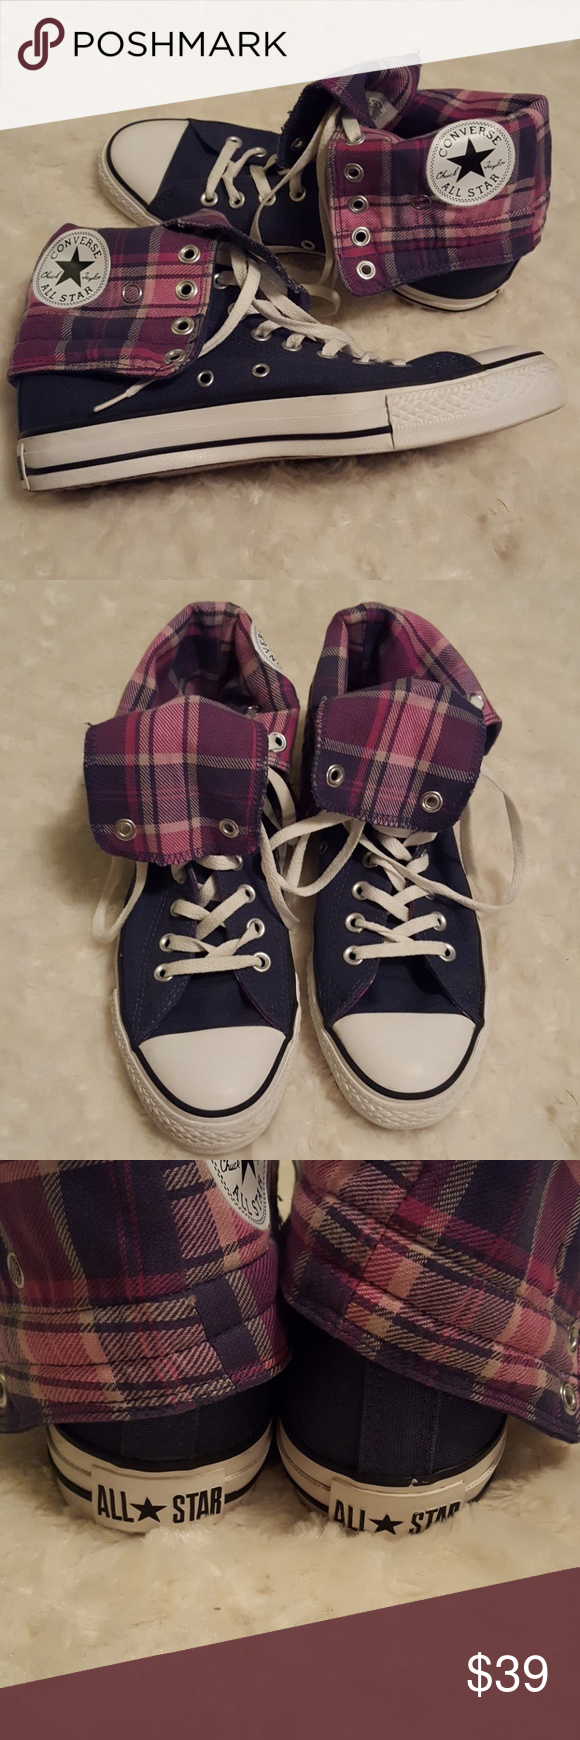 285cb598b2e8 Converse Chuck Taylor All Star black pink plaid hi ⭐EUC Converse Chuck  Taylor All Star black and pink plaid high-top sneakers. These have been  very gently ...